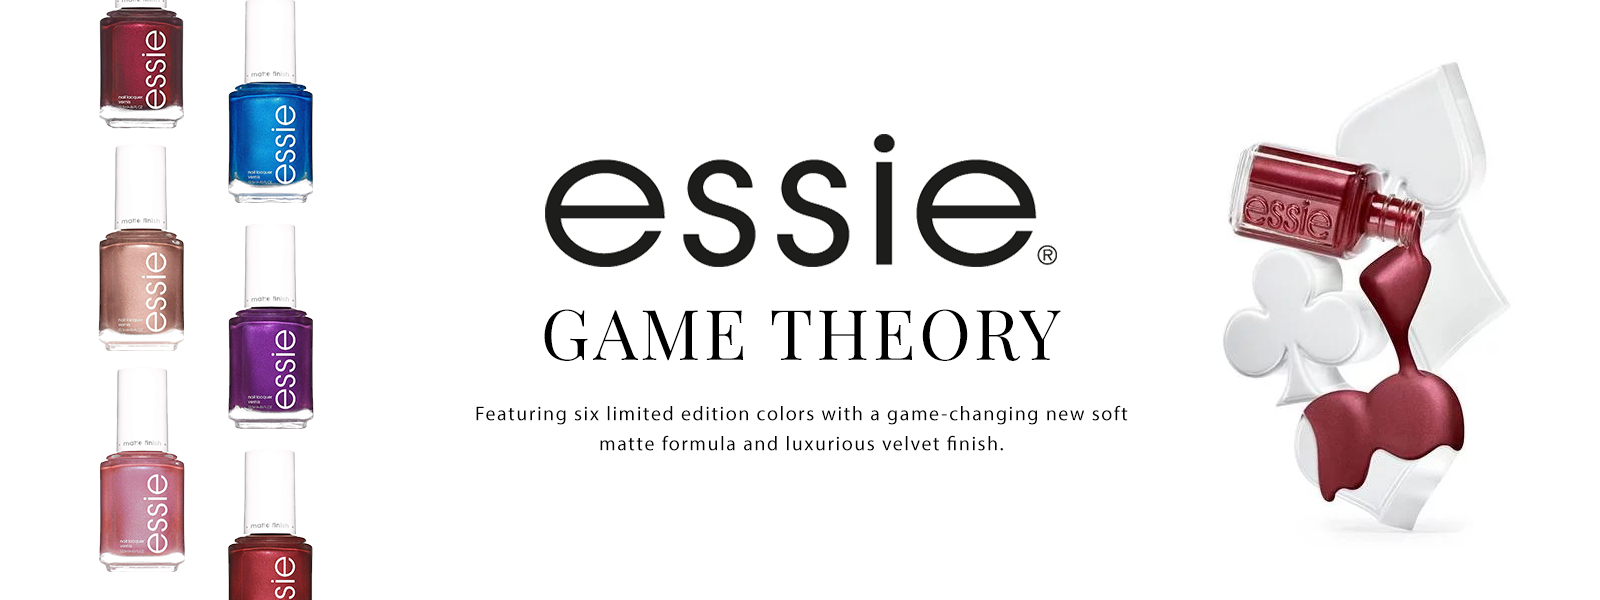 Essie Holiday 2019 Game Theory Collection